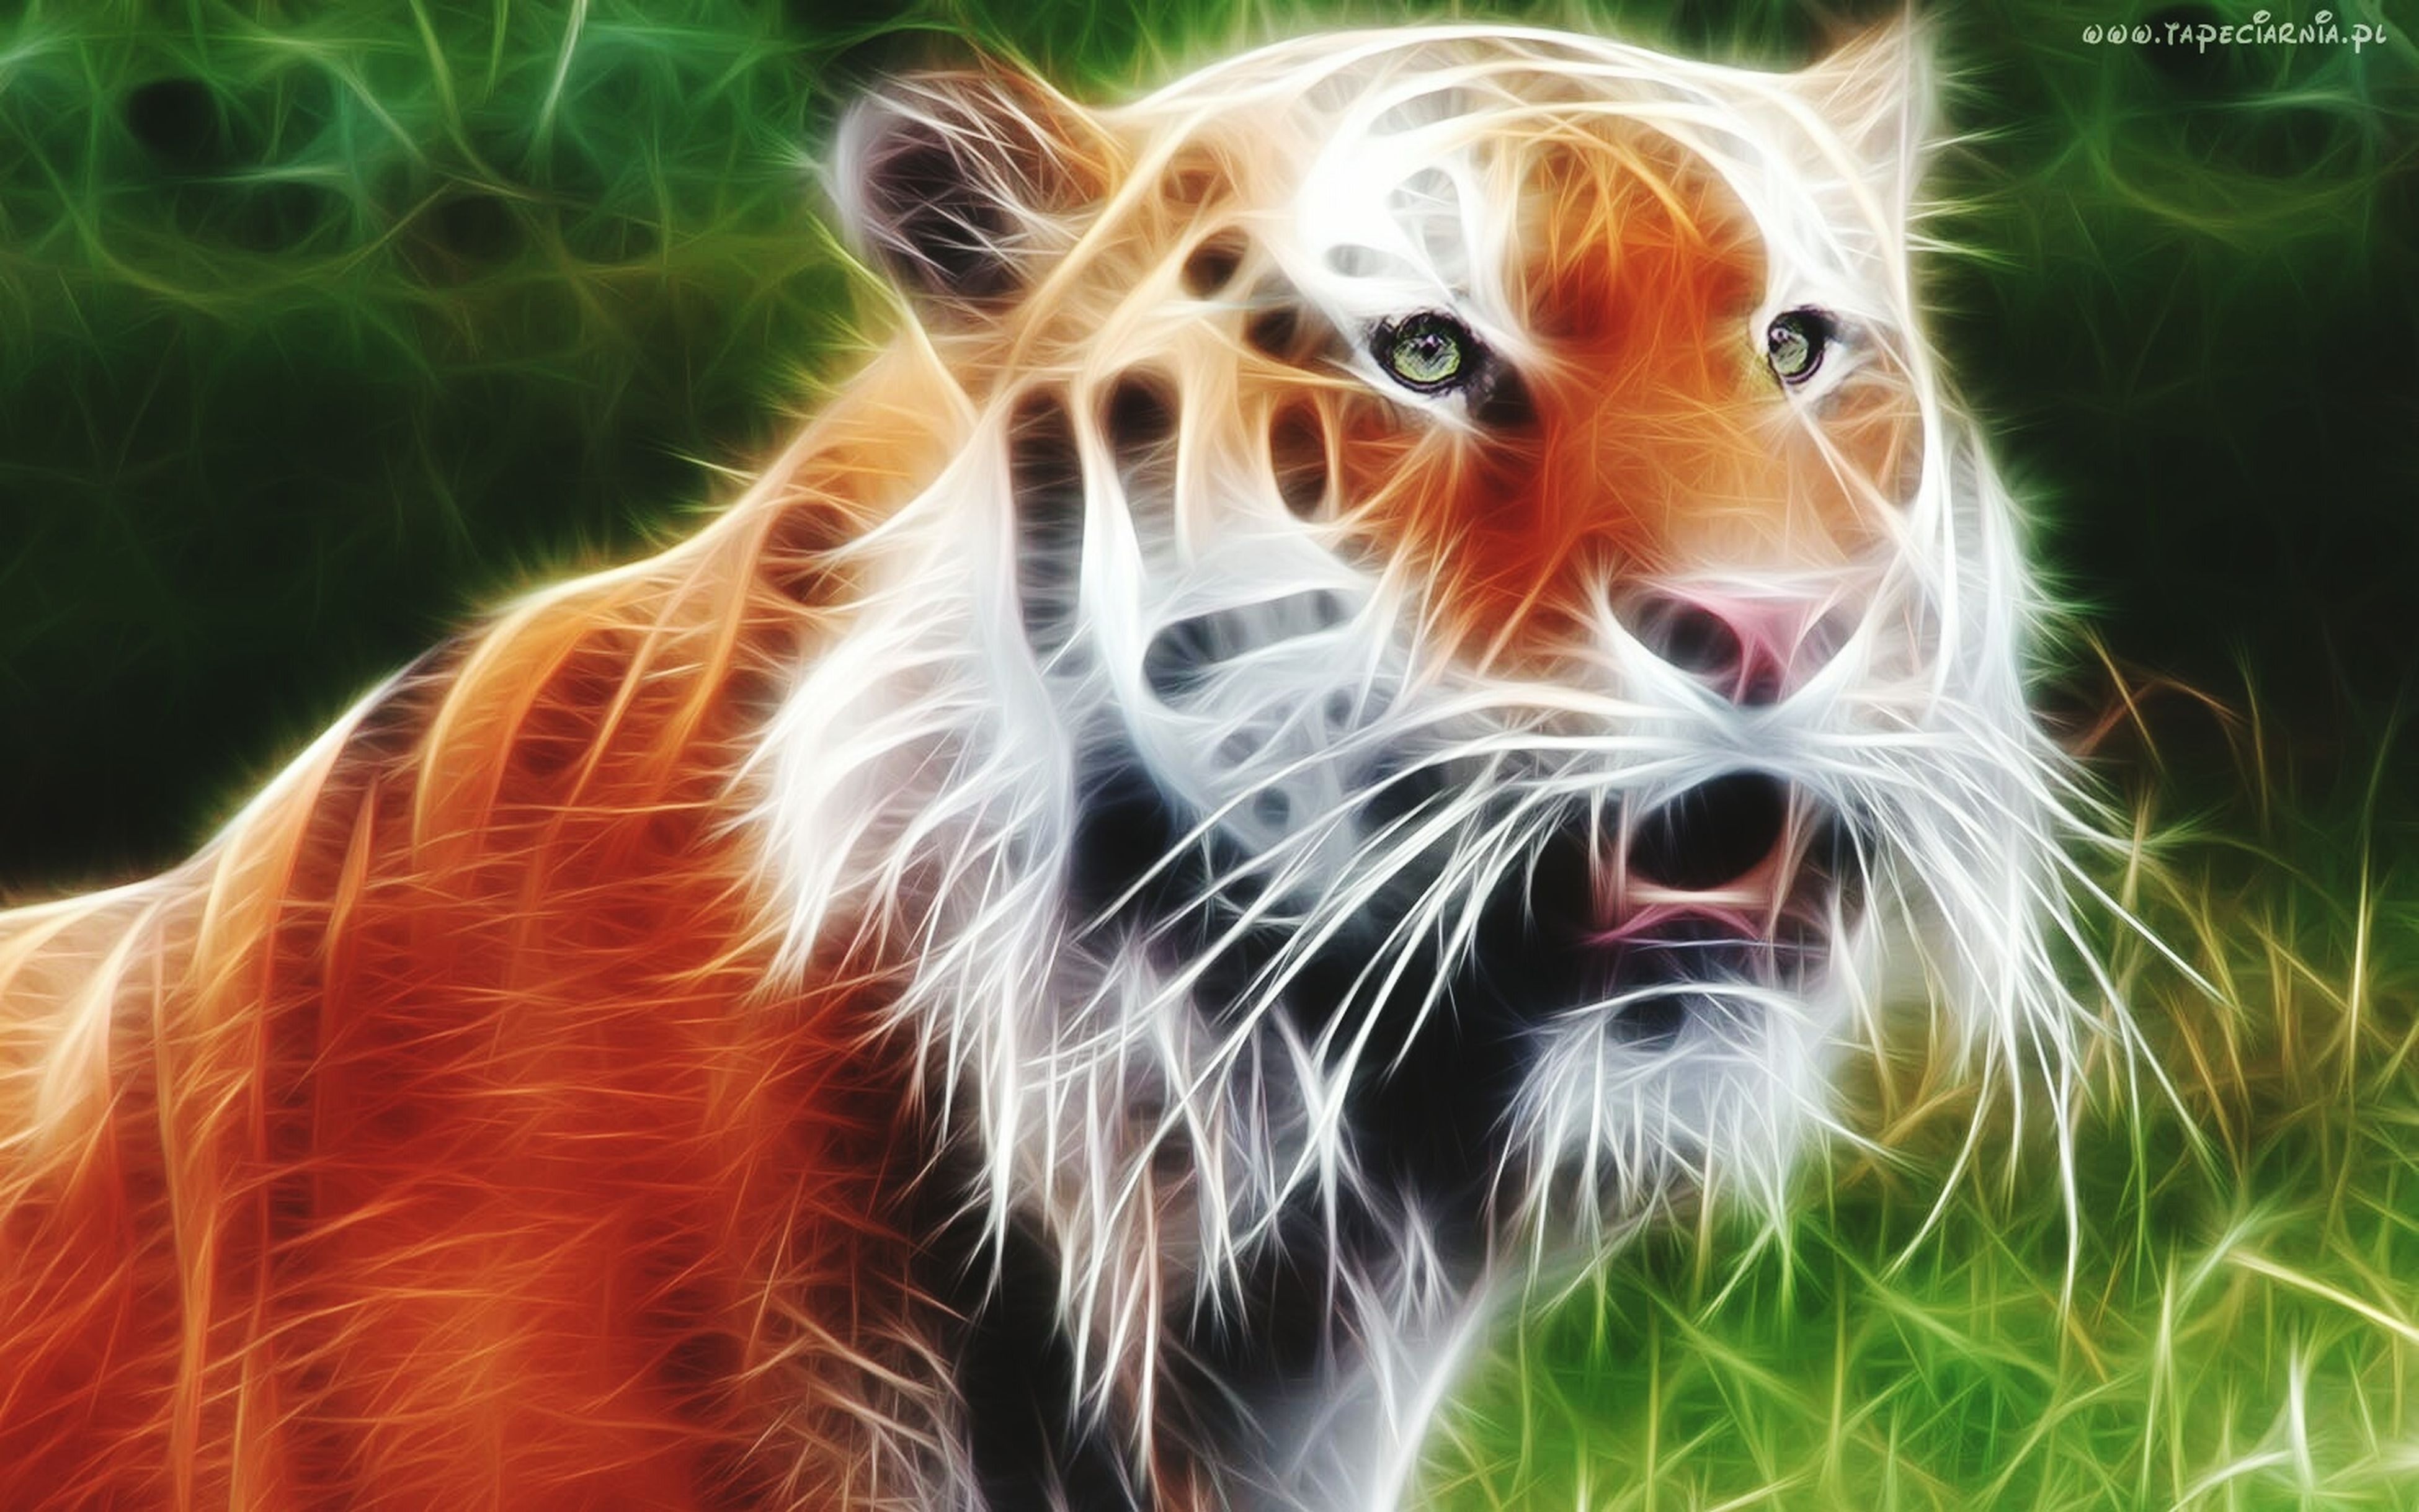 animal themes, mammal, one animal, domestic animals, pets, close-up, animal head, animal hair, animal body part, whisker, focus on foreground, domestic cat, zoology, no people, day, feline, animal, vertebrate, nature, part of